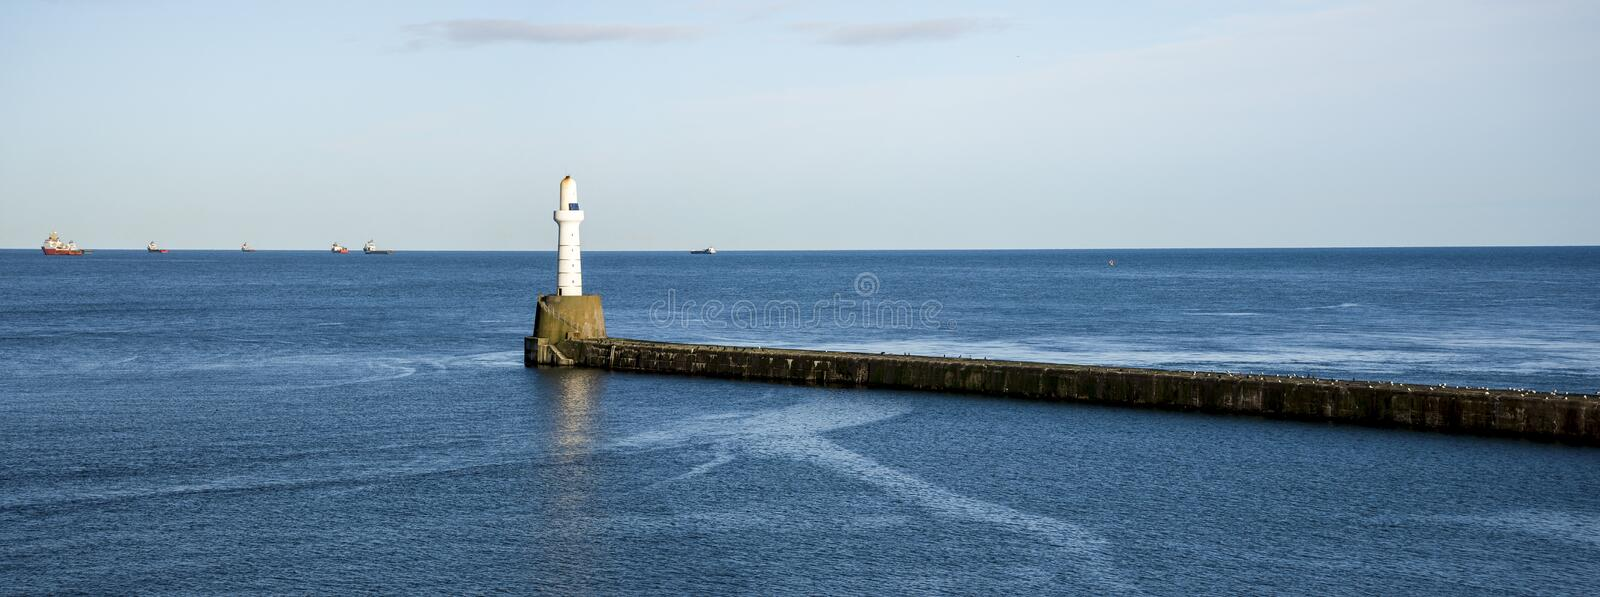 South breakwater lighthouse at the entrance to Aberdeen harbor, Scotland, United Kingdom. November 2017 royalty free stock image